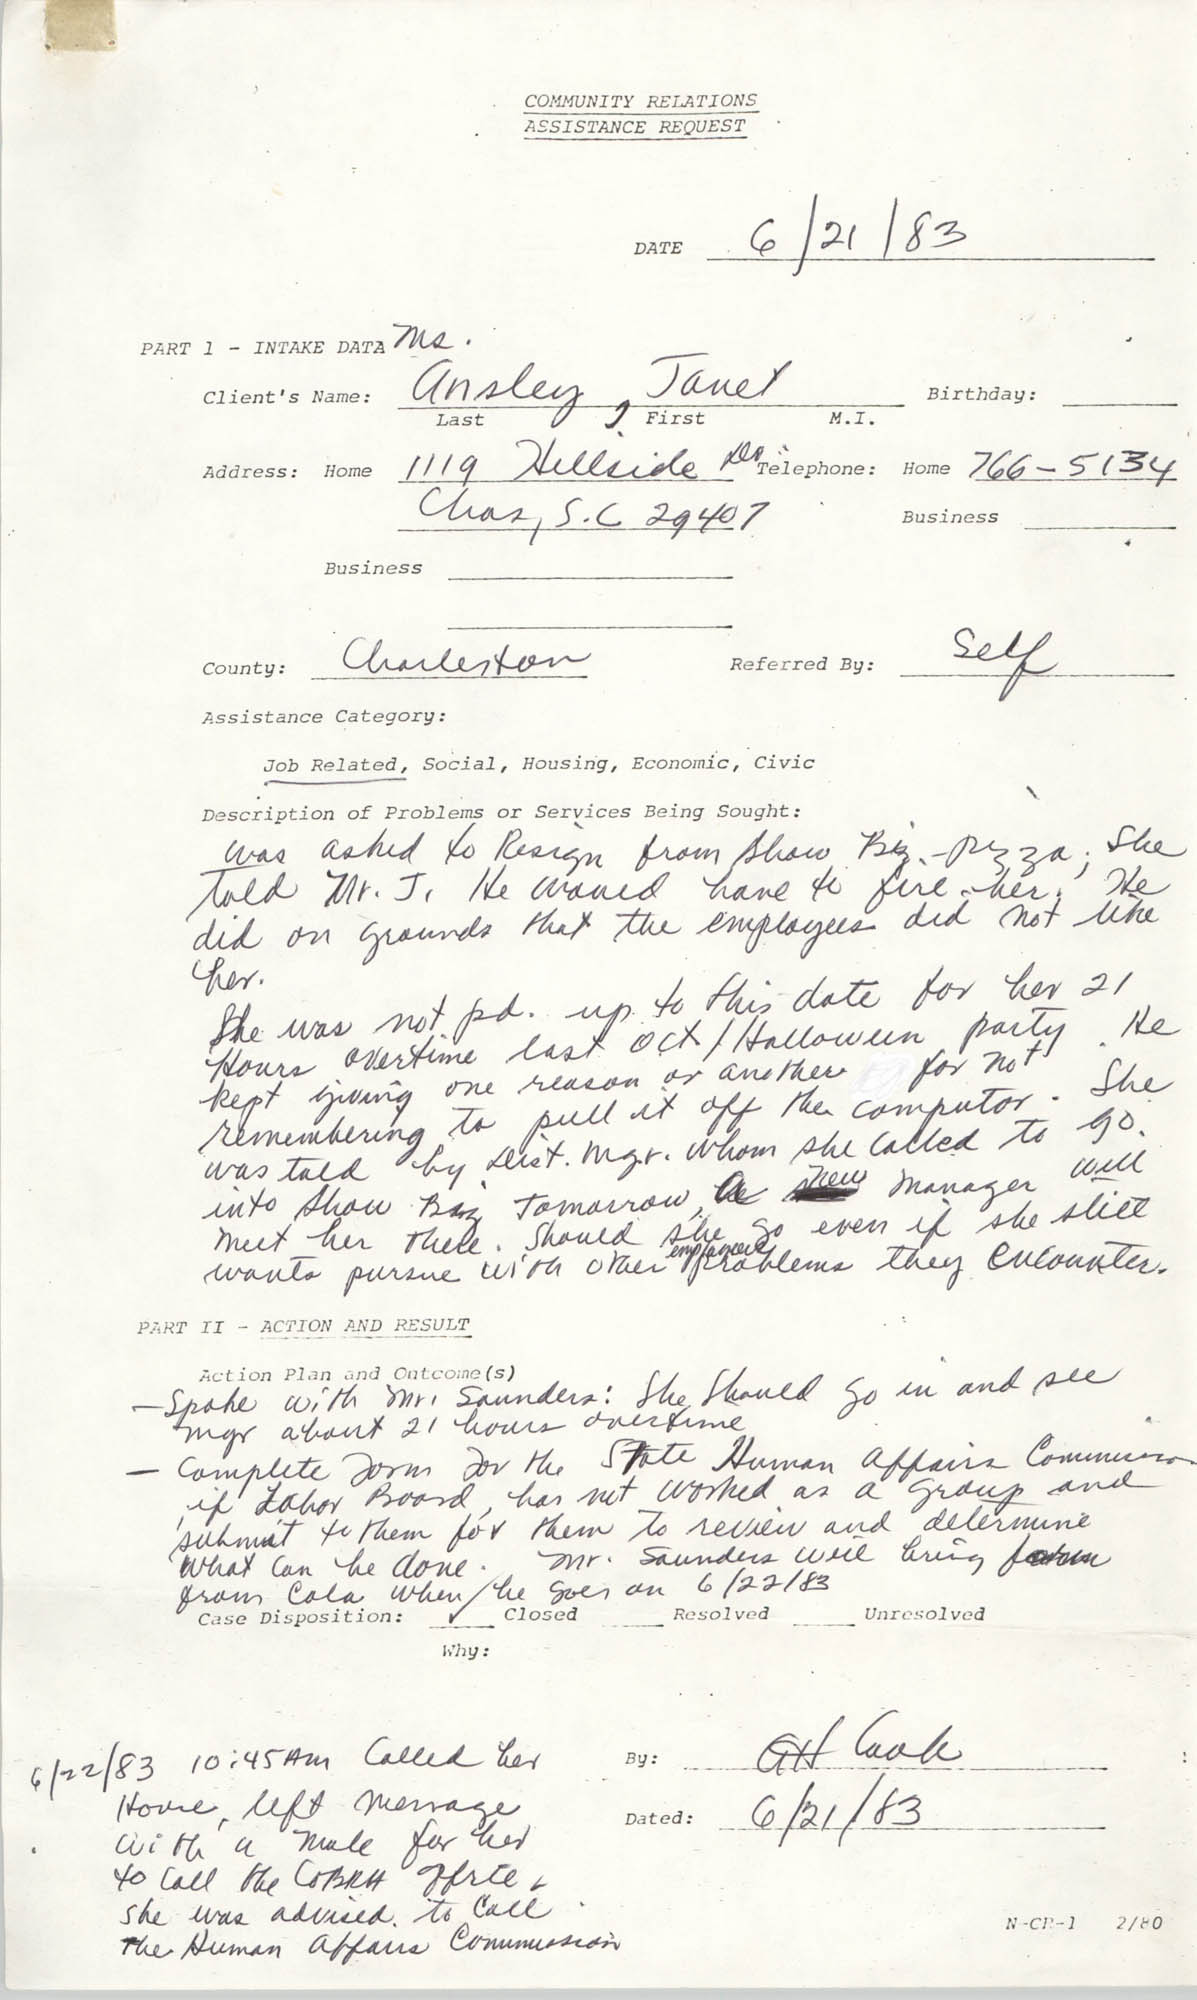 Community Relations Assistance Request, June 21, 1983